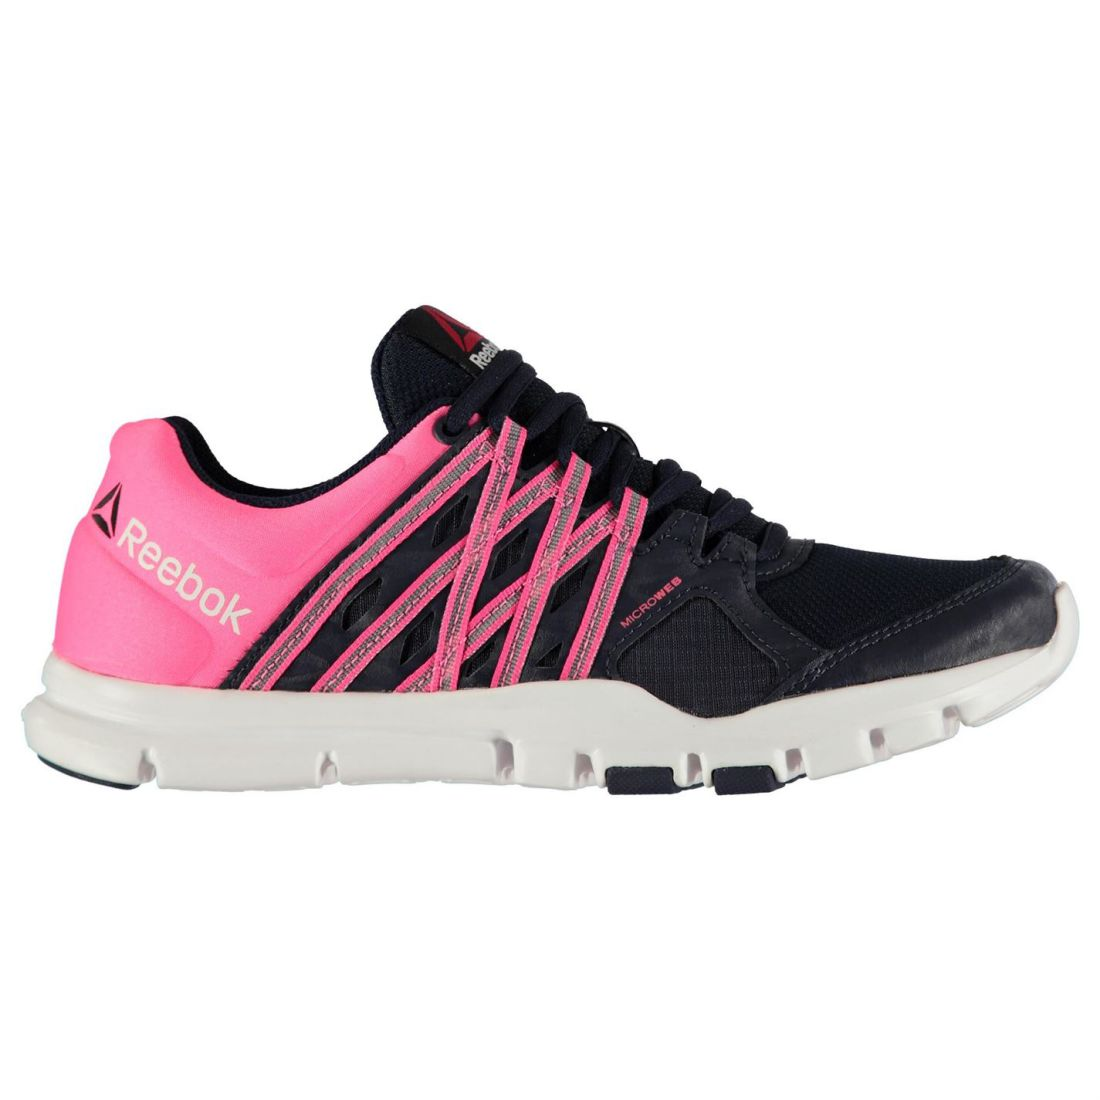 0ea9402e917 Reebok Ladies Yourflex Train SNEAKERS Trainers Breathable Shoes ...